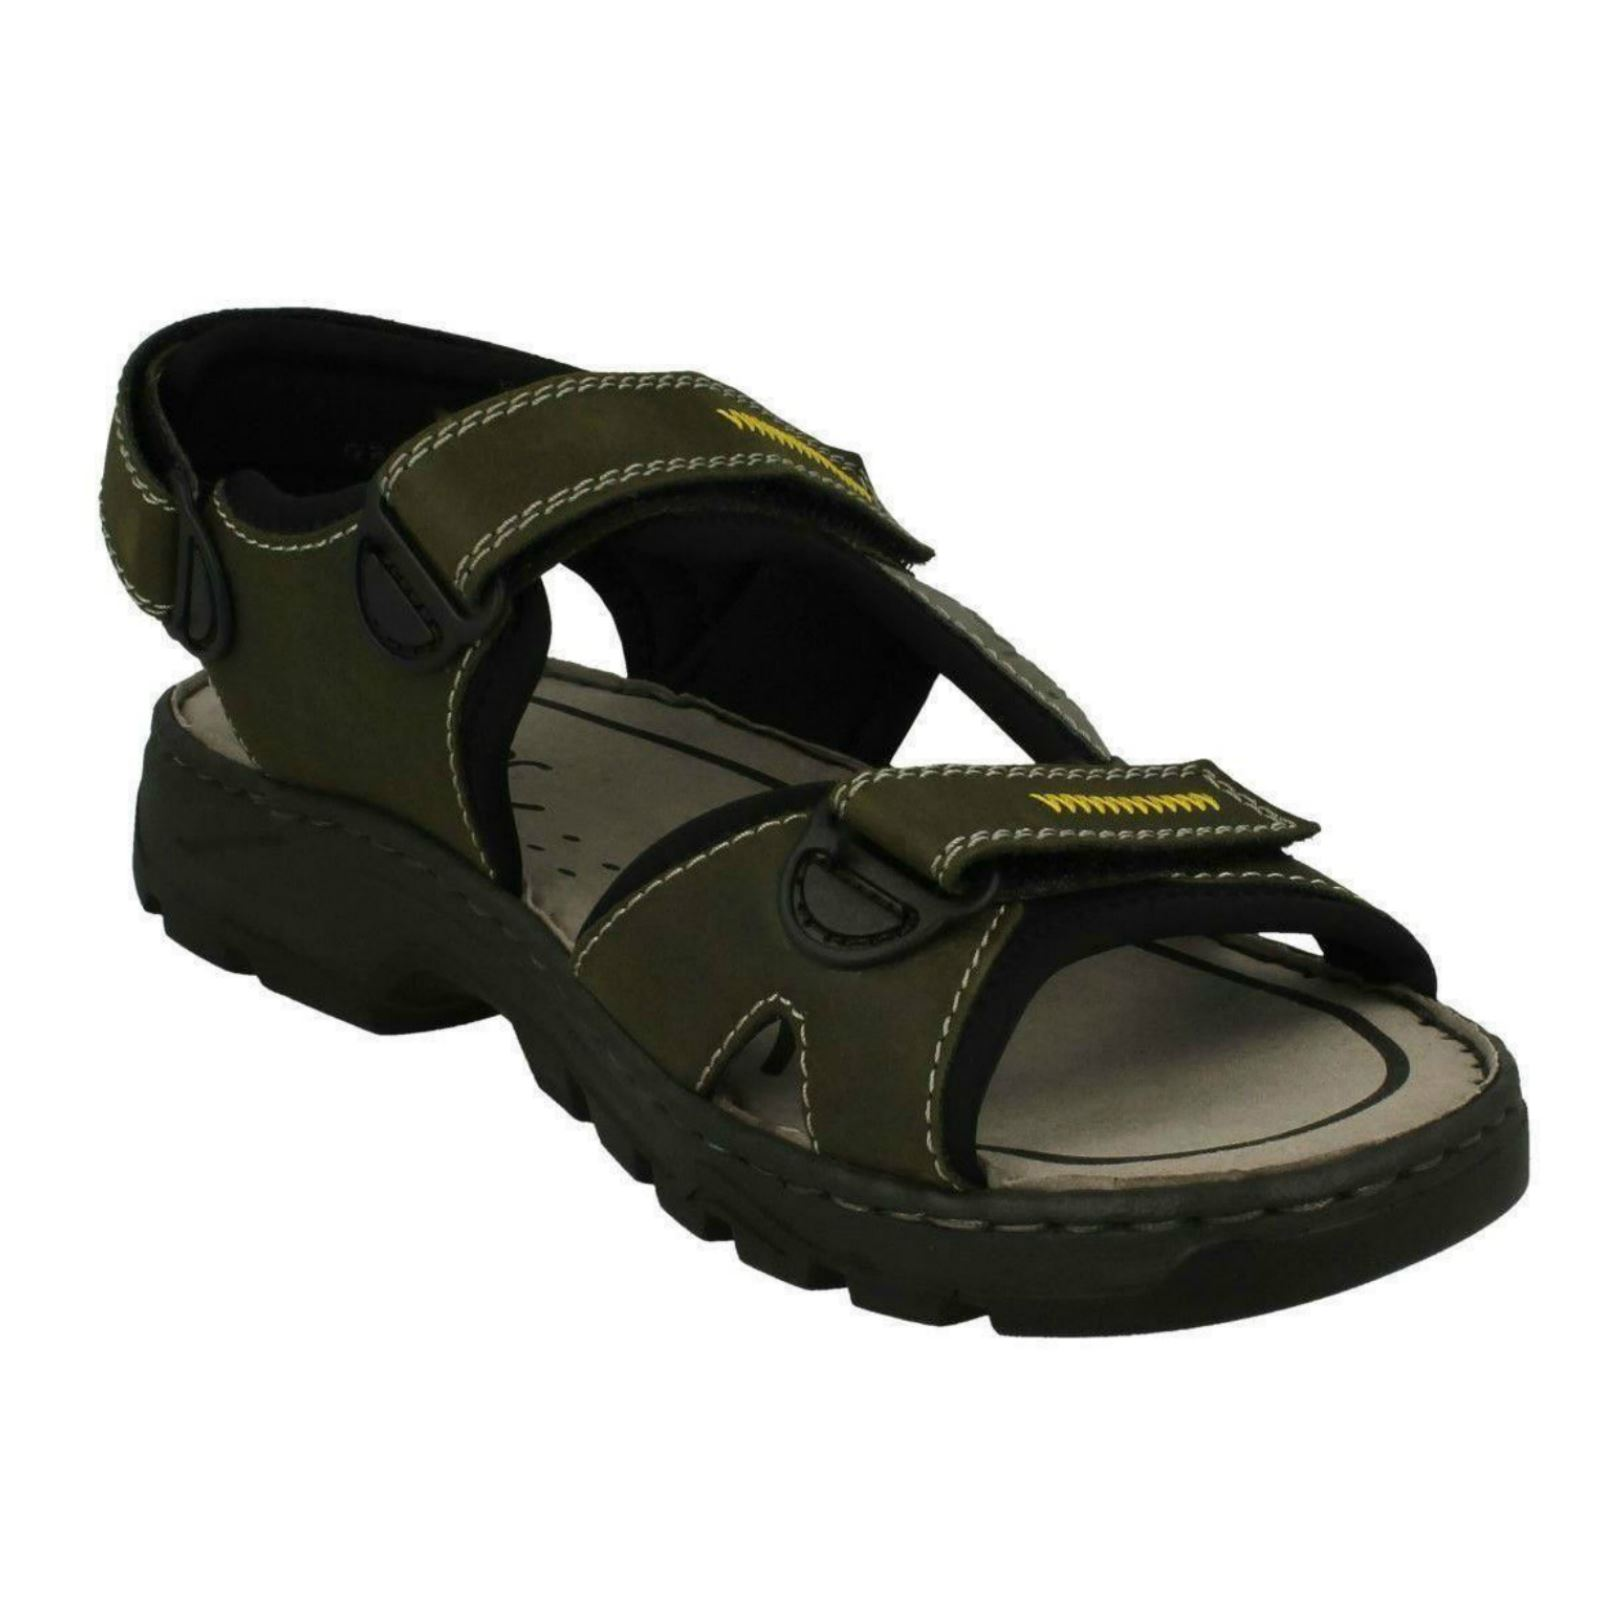 Mens-Rieker-Casual-Strapped-Sandals-26157 thumbnail 8